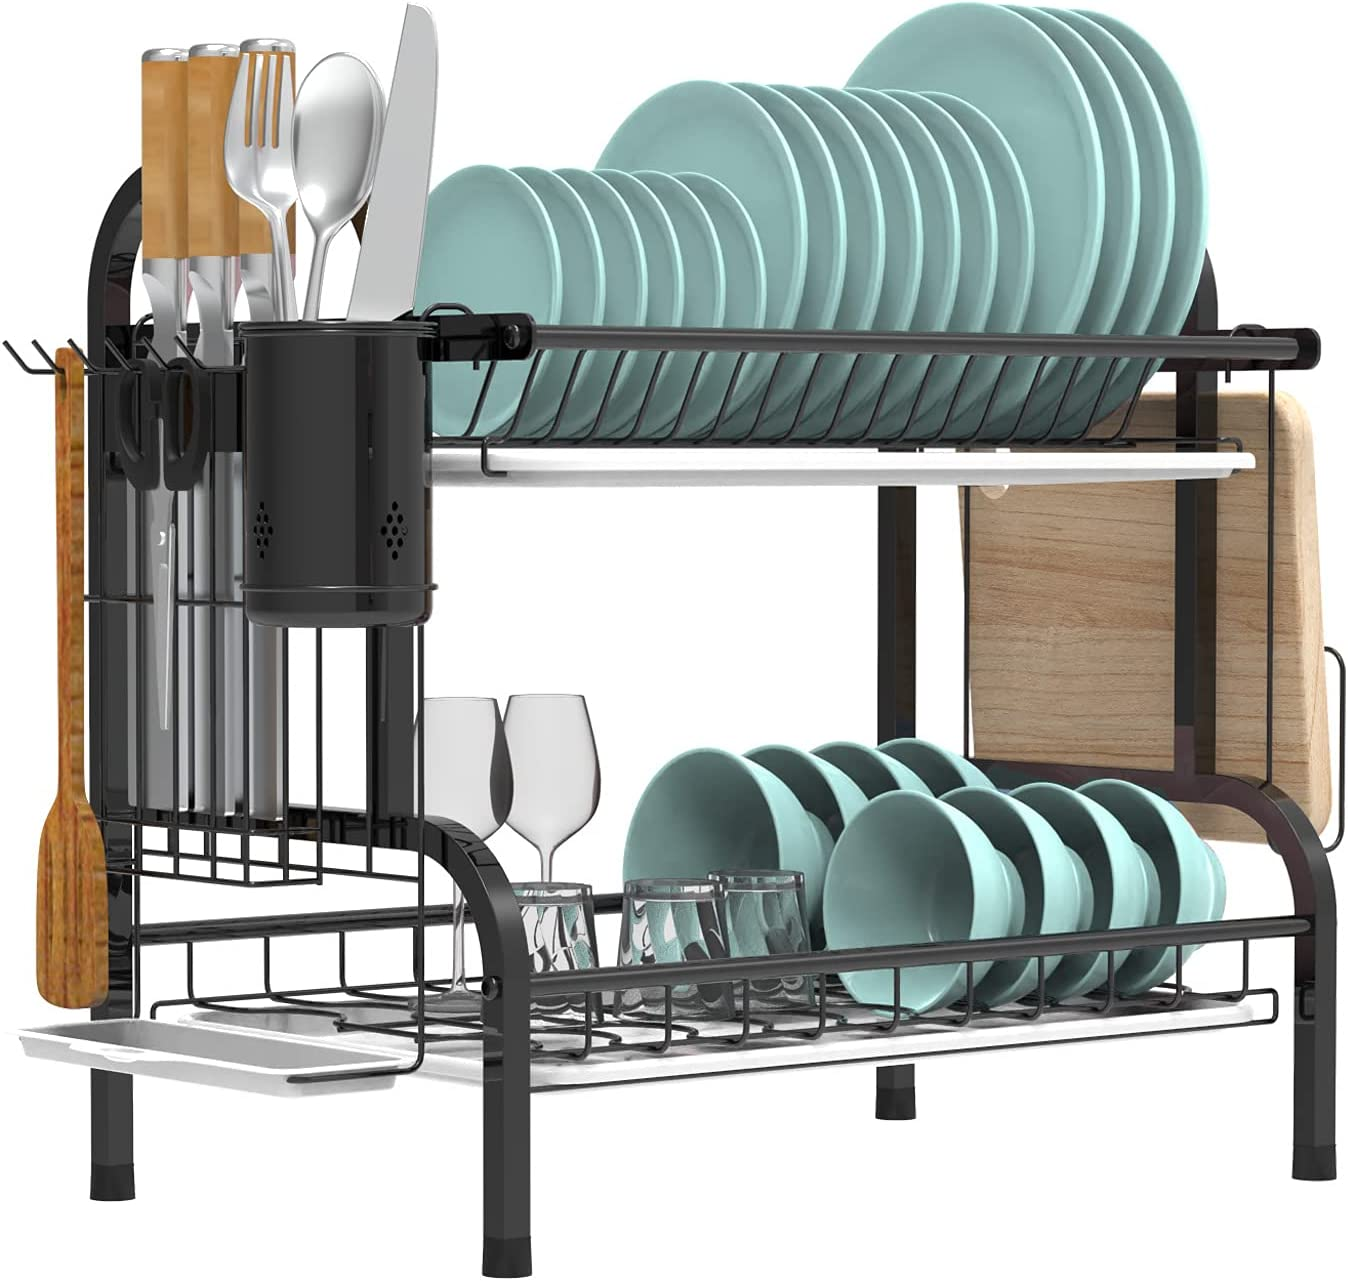 Dish Ranking integrated 1st place Max 55% OFF Drying Rack Mamgaa 2 Set Drainboard for with Tier